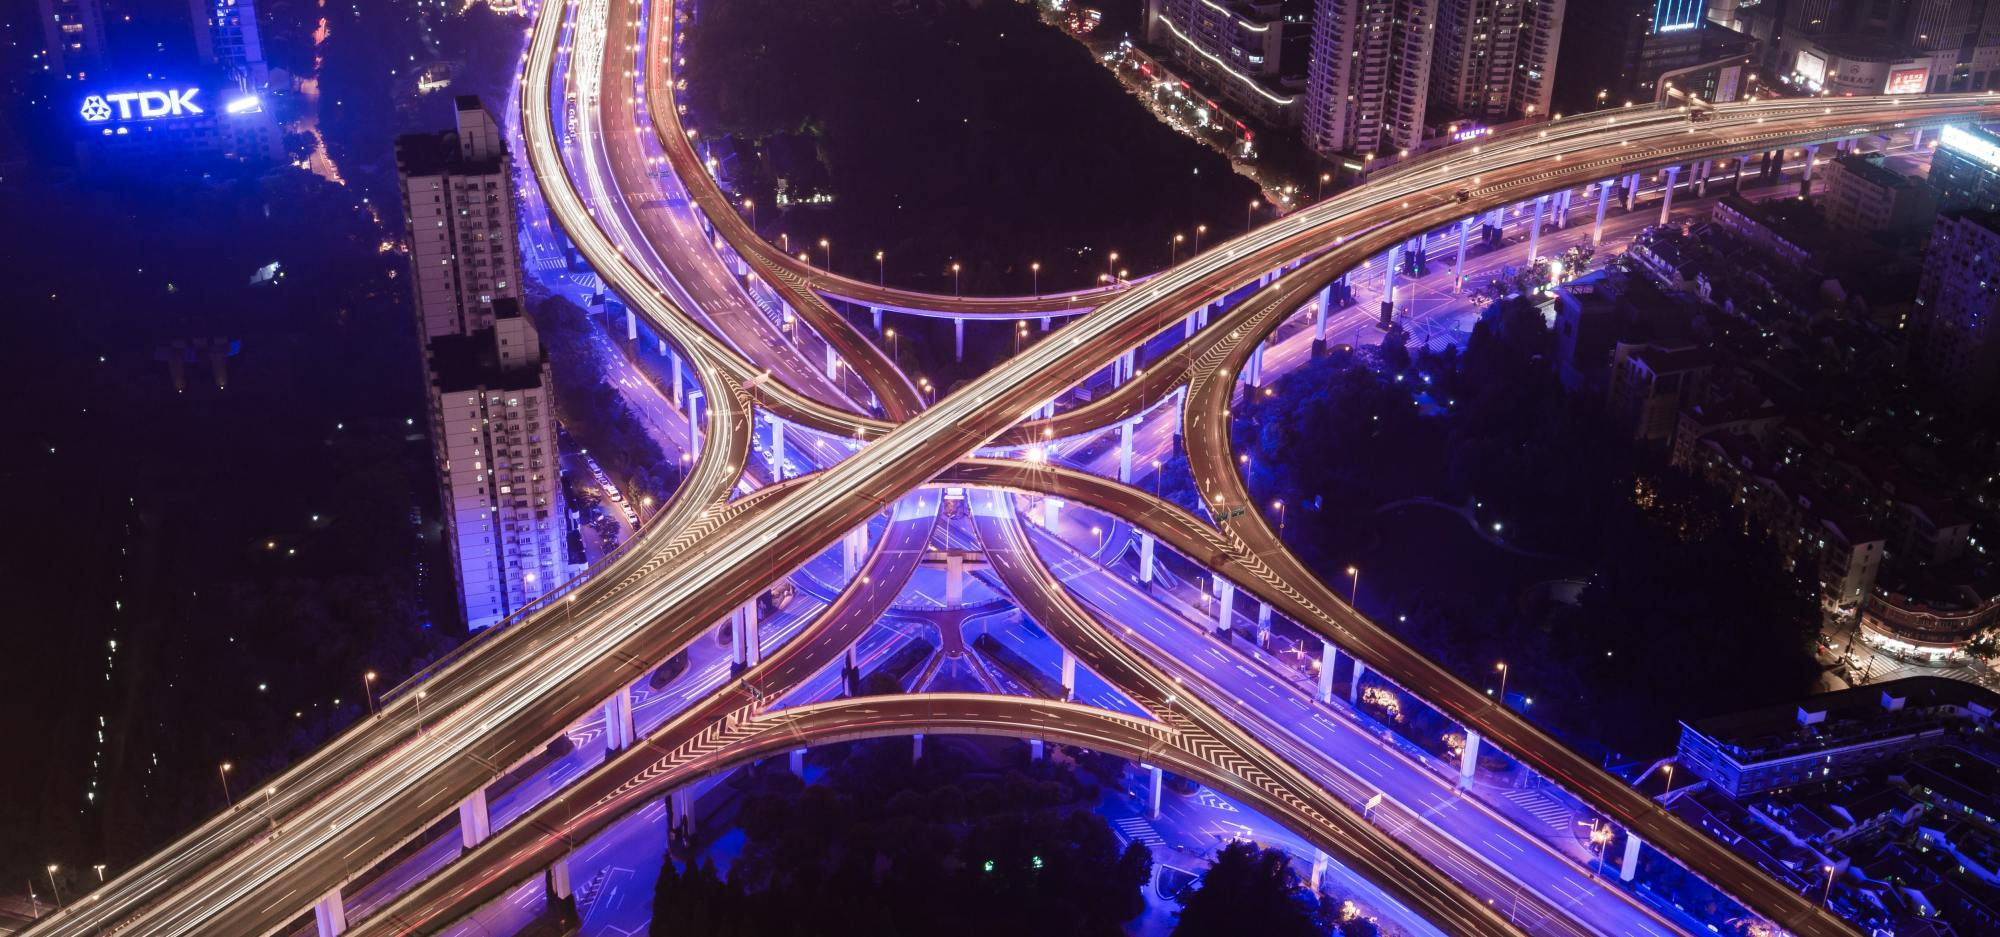 Two highway crossing, with intersections going between each other, at night, with a beautiful blue light